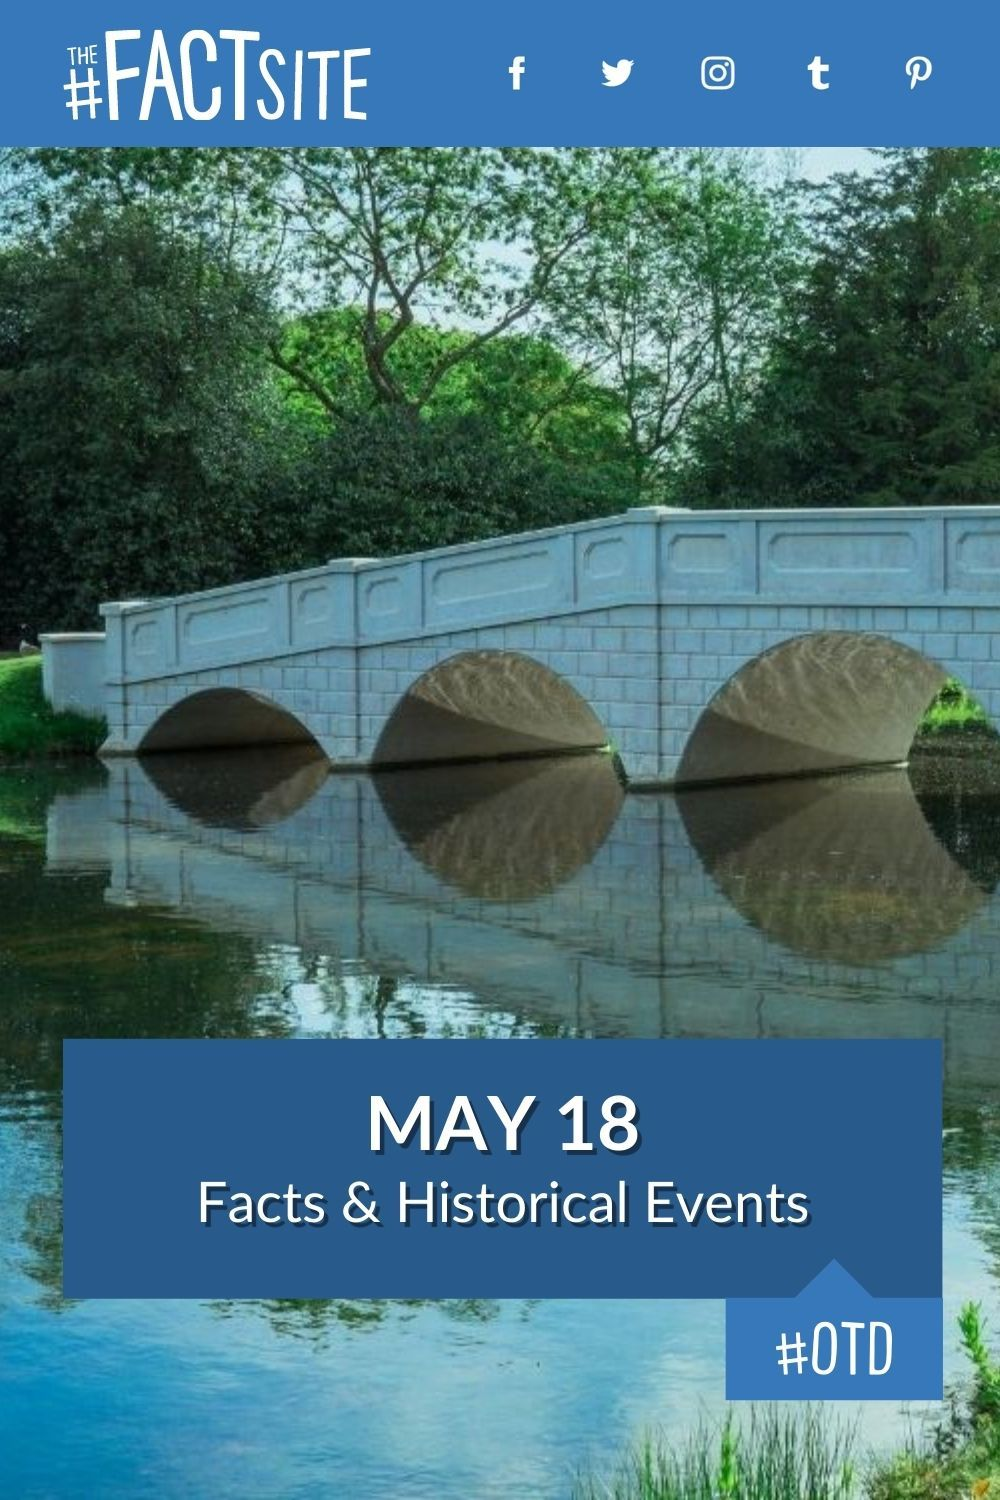 Facts & Historic Events That Happened on May 18